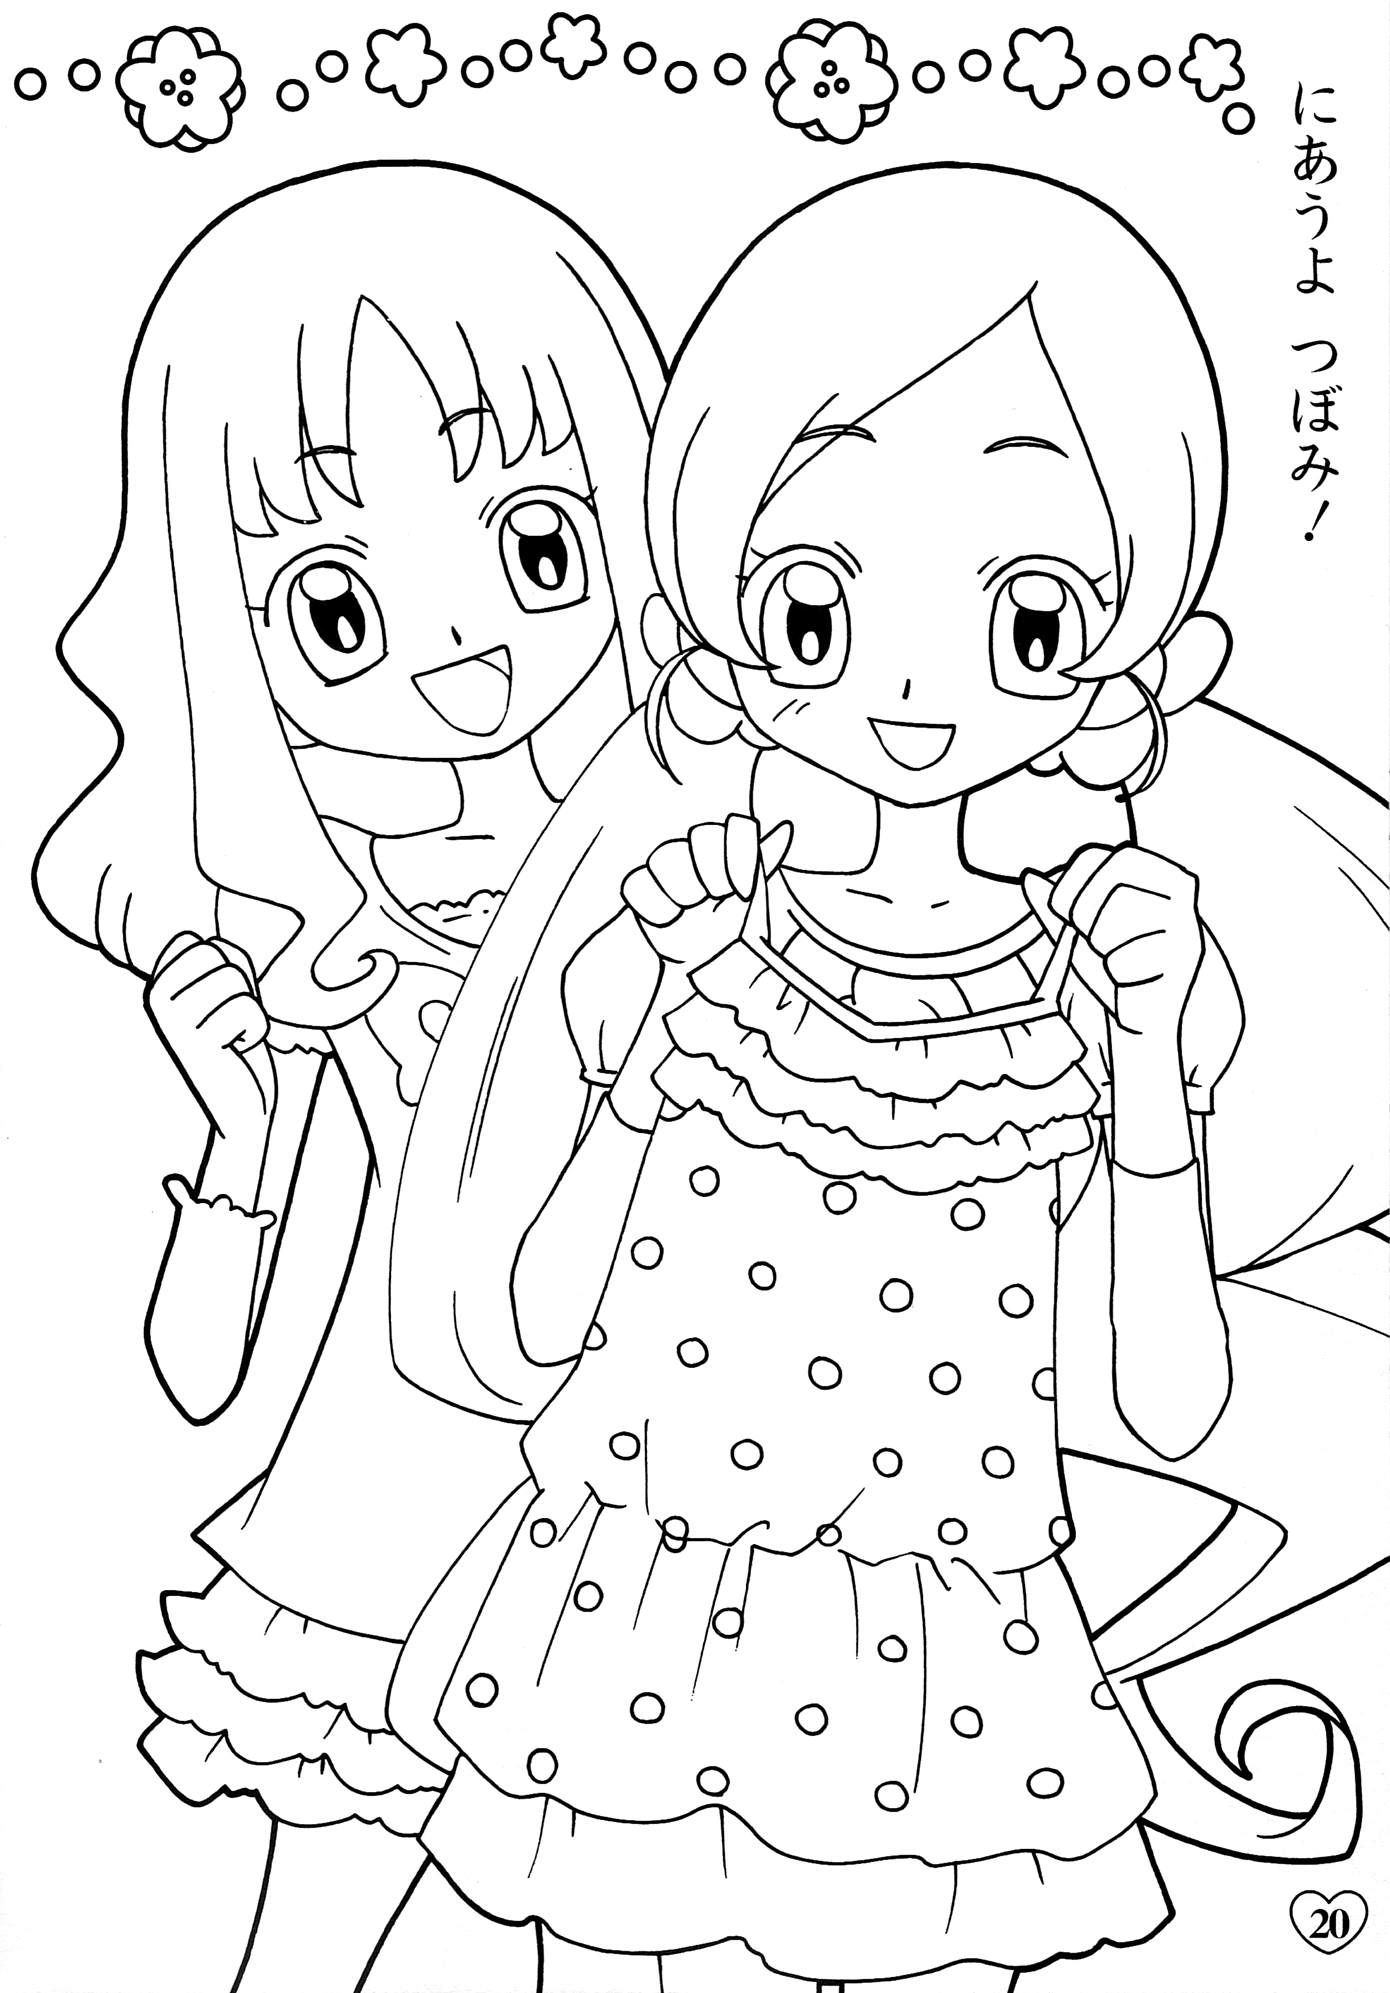 Pin de Mama Mia en anime & shojo coloring book | Pinterest